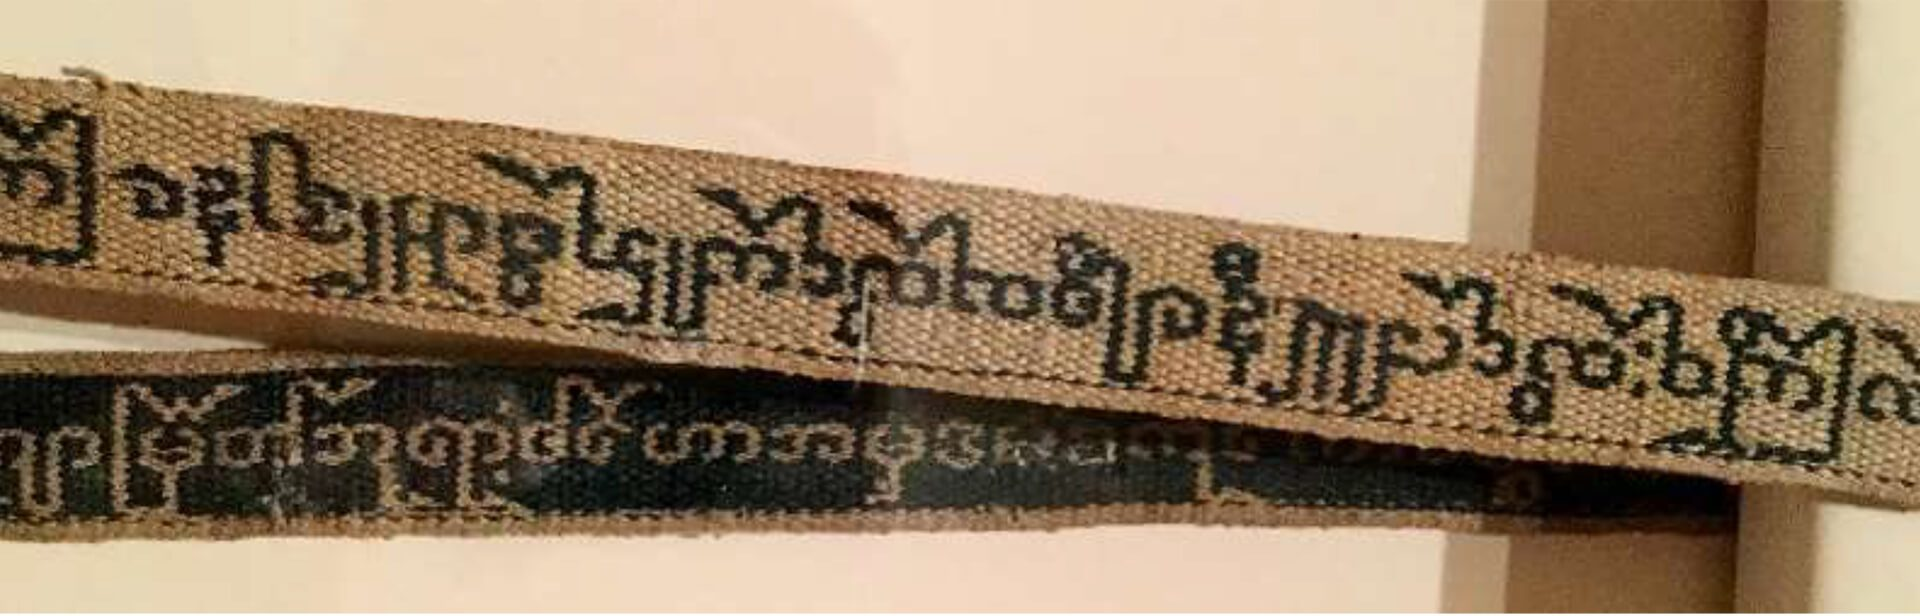 Figure 1: a sazigyo from Burma (Myanmar) – a decorated inscription band for binding religious texts. Sample of the text in the body of the band